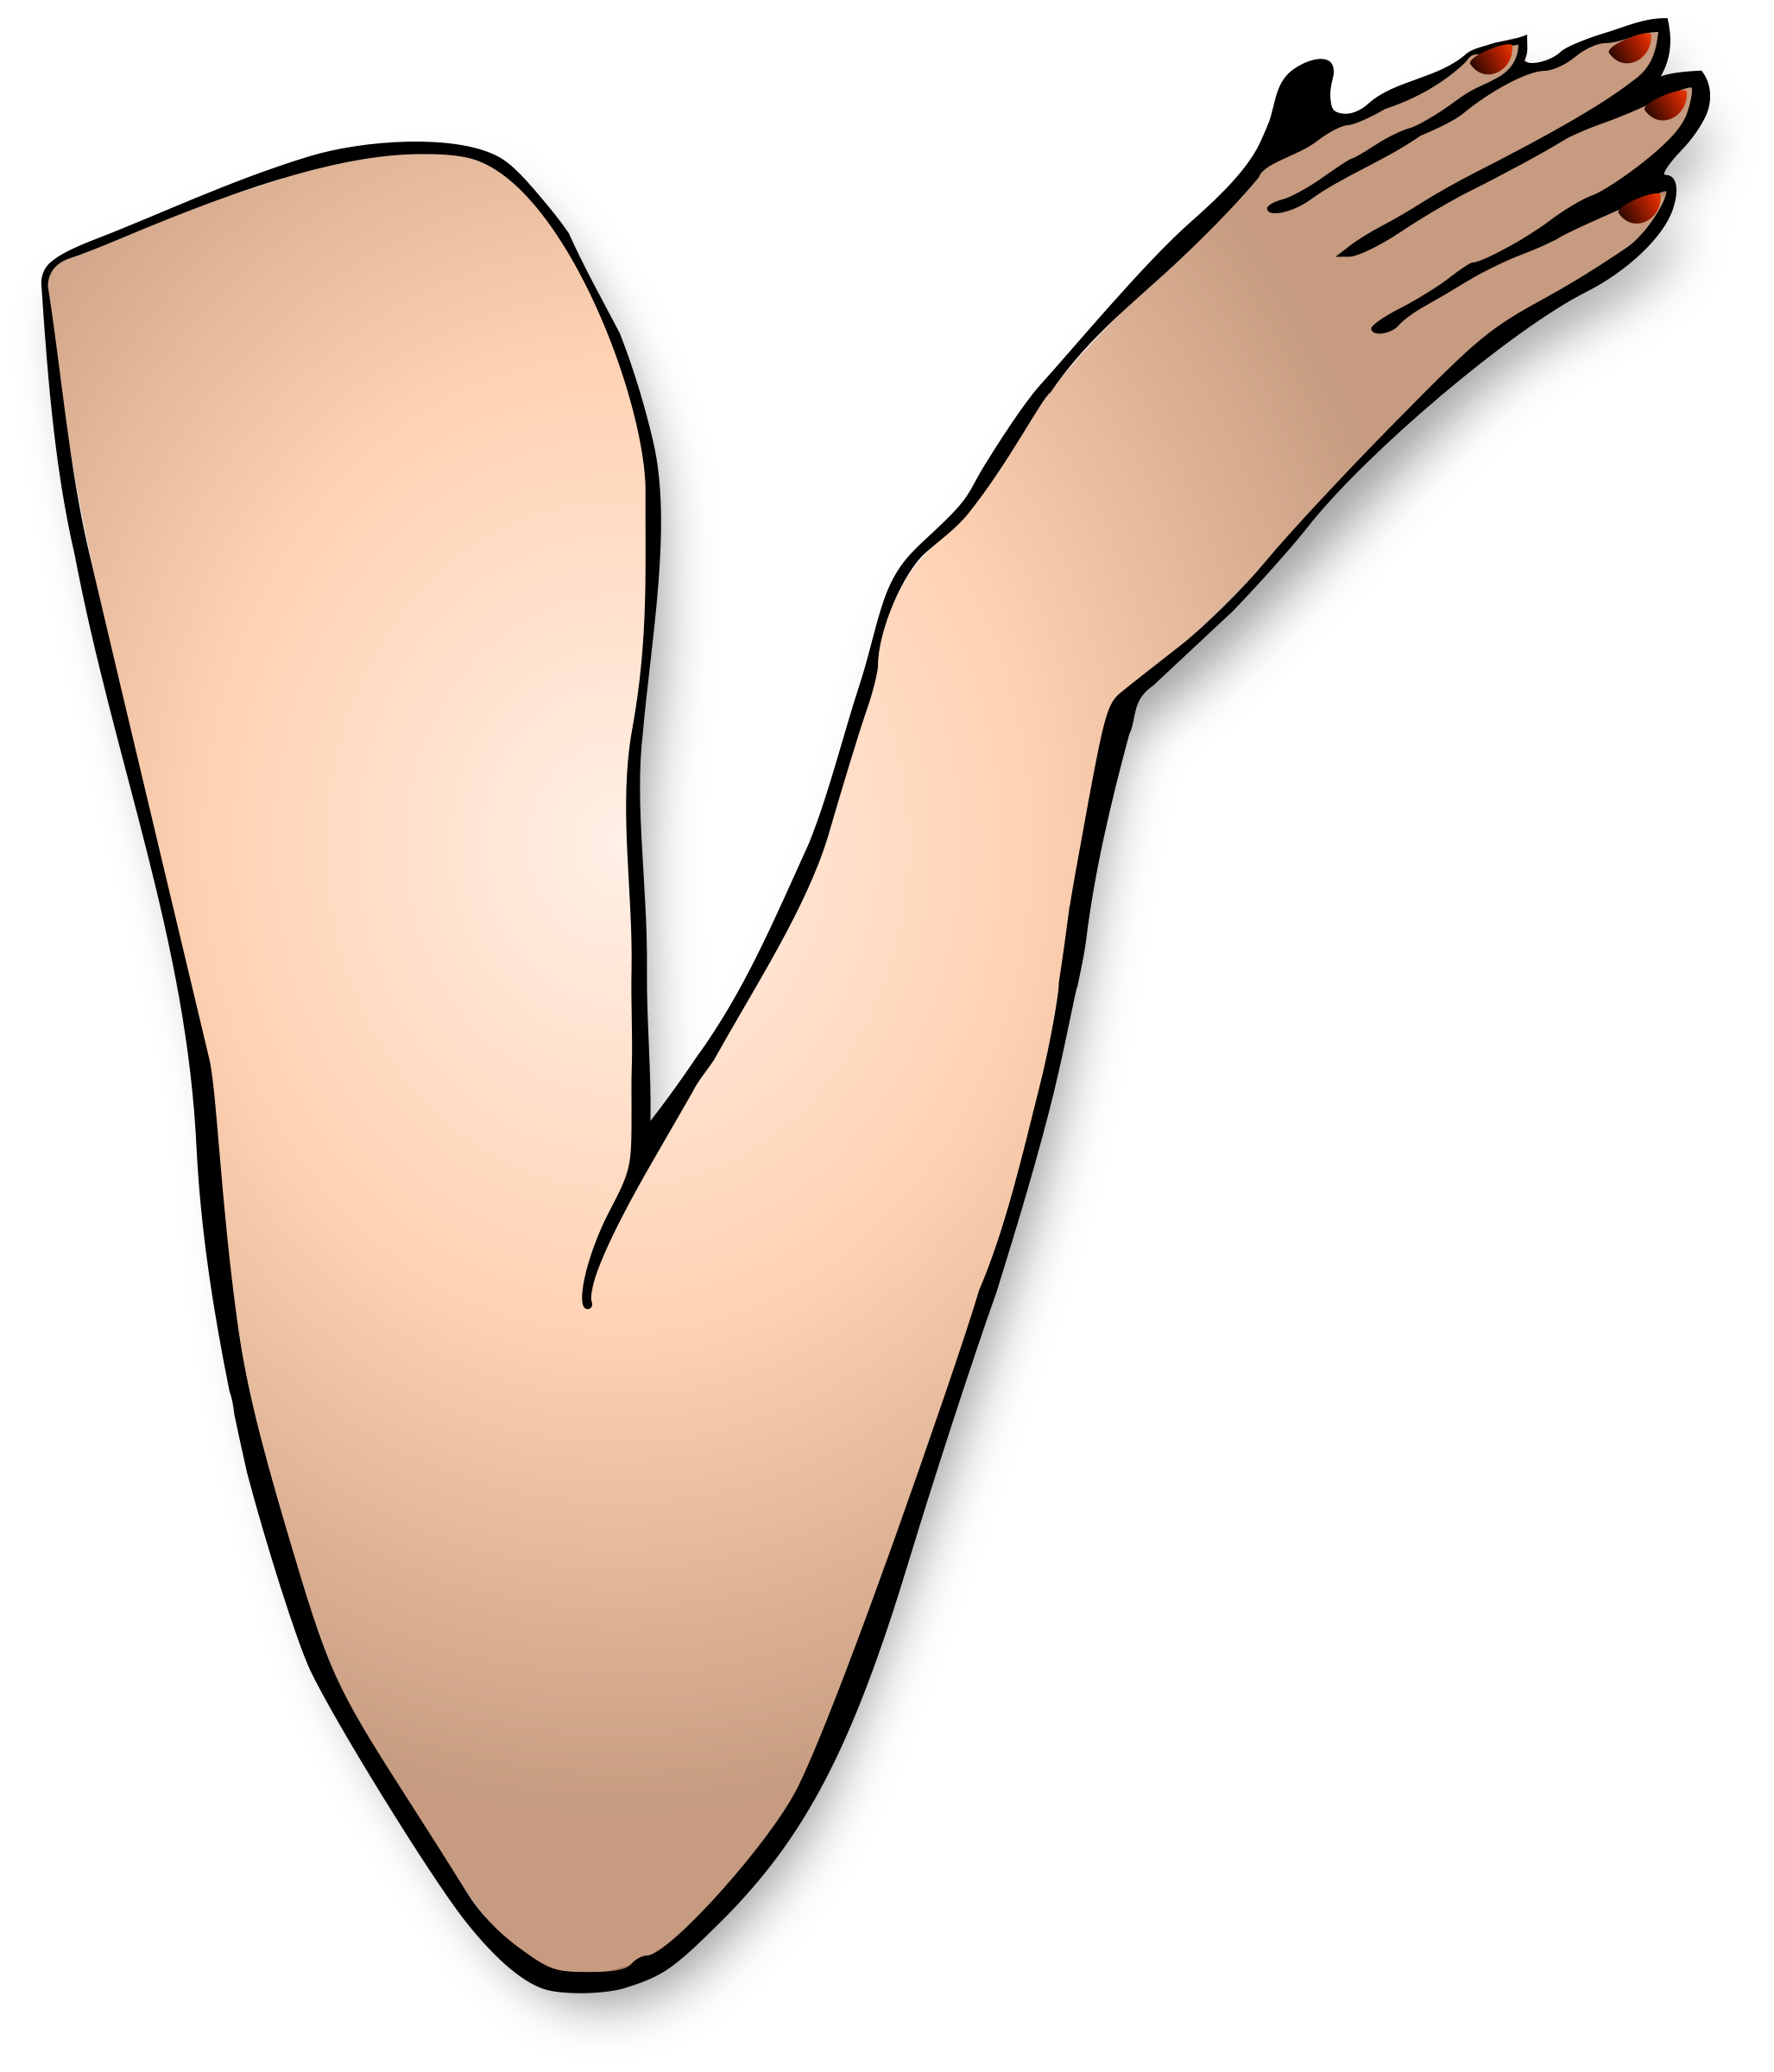 Right Arm Clipart.